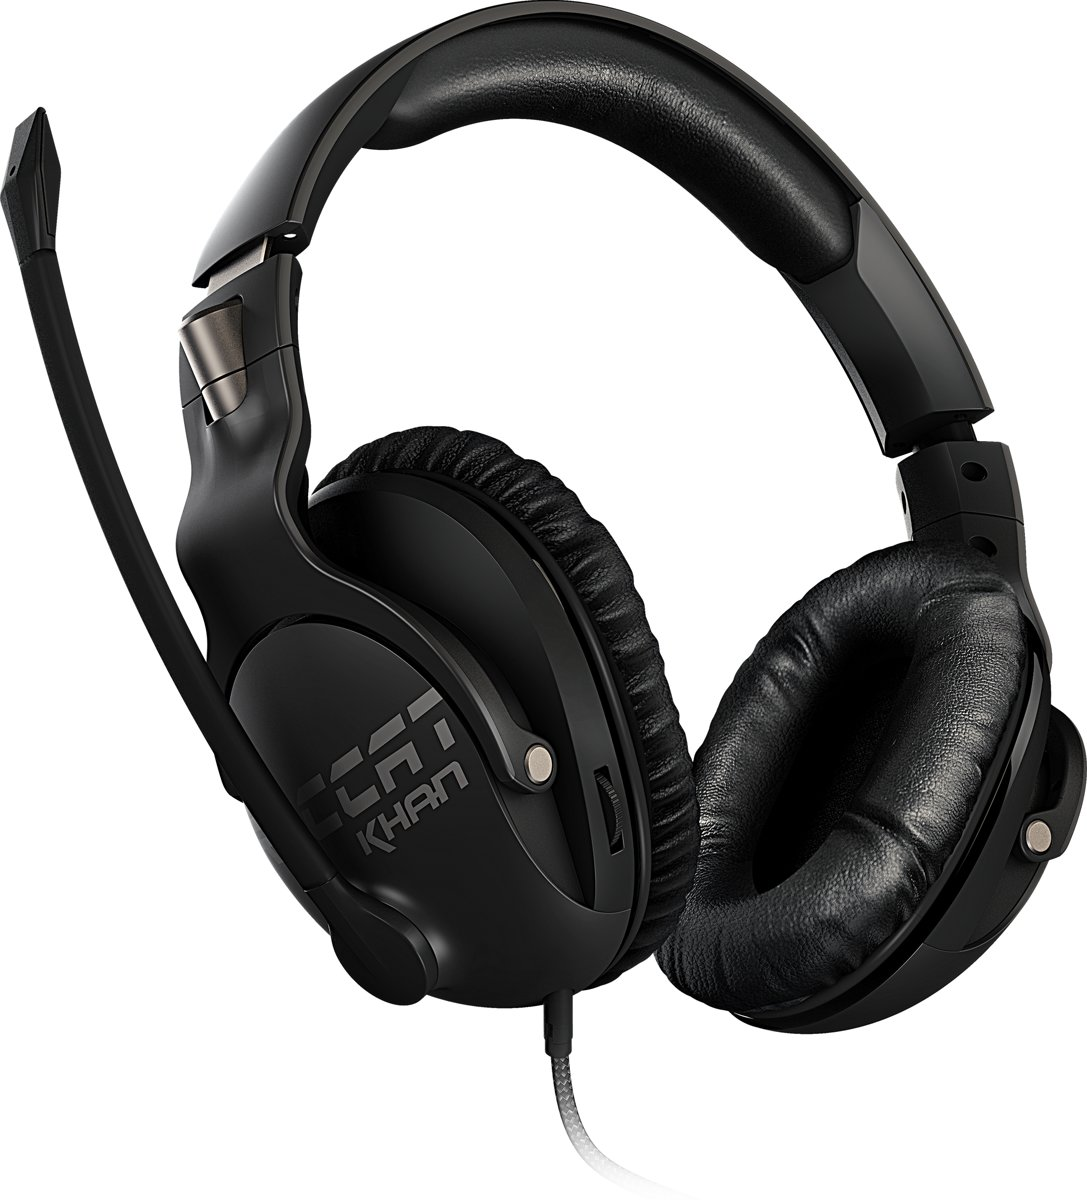 Roccat Khan Pro - Gaming Headset - Zwart - PS4 + Xbox One + Windows + Mac